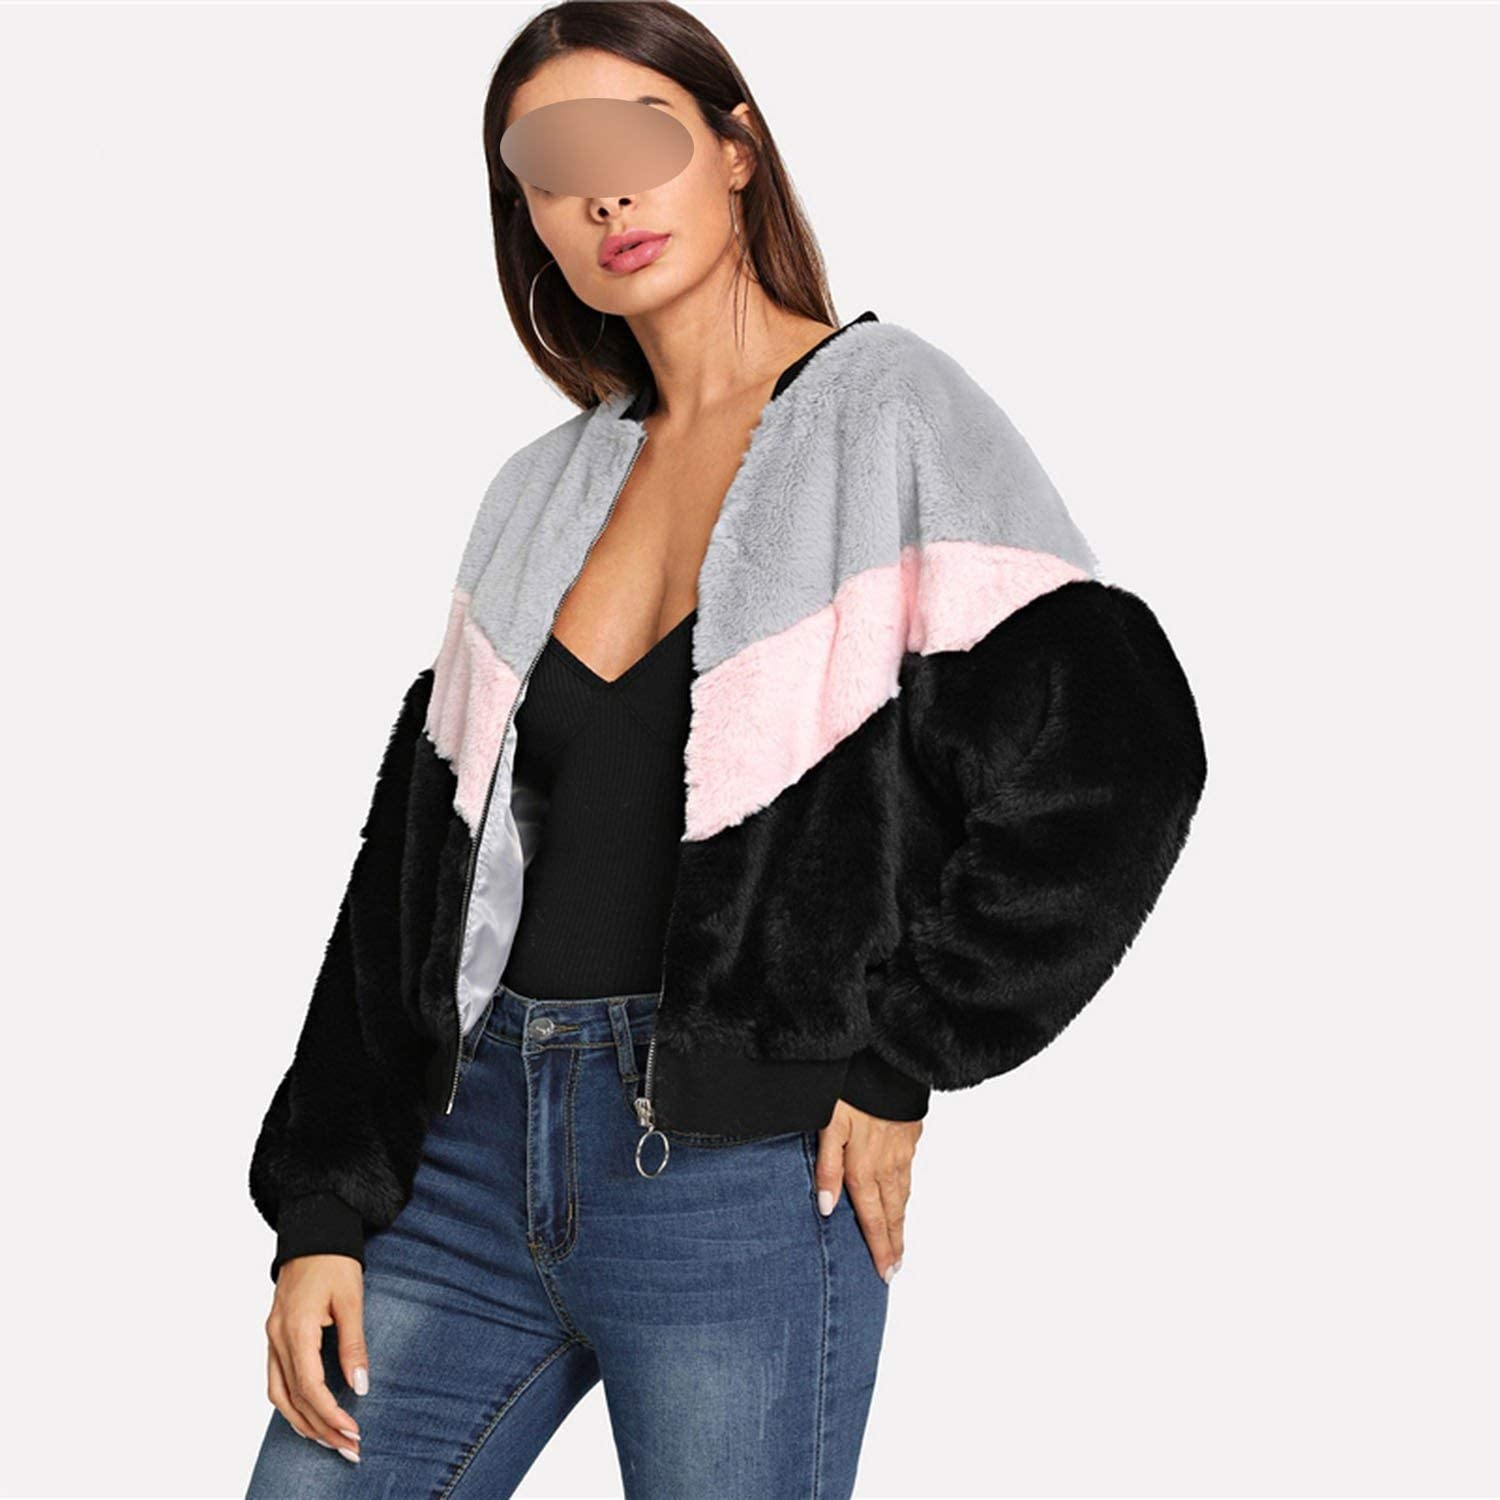 contentment Multicolor Fuzzy Zipper Up Colorblock Stand Collar Campus Jacket